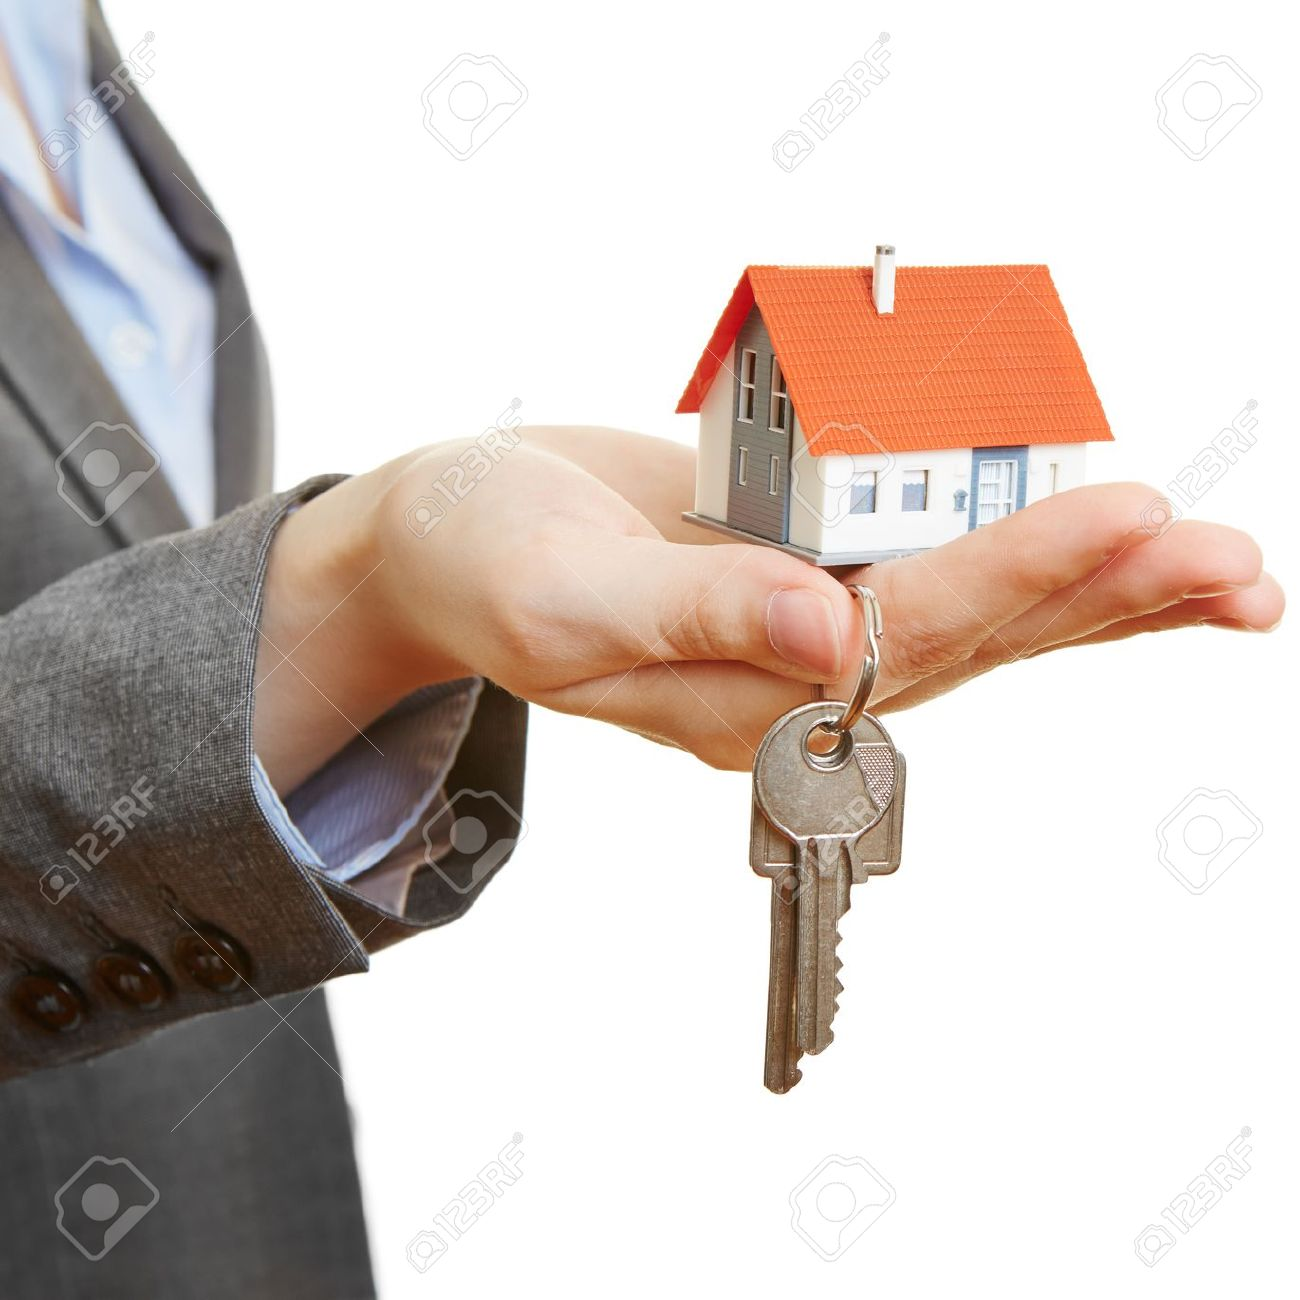 Hand Of A Woman Holding Little House And Keys Stock Photo Picture And Royalty Free Image Image 20936180